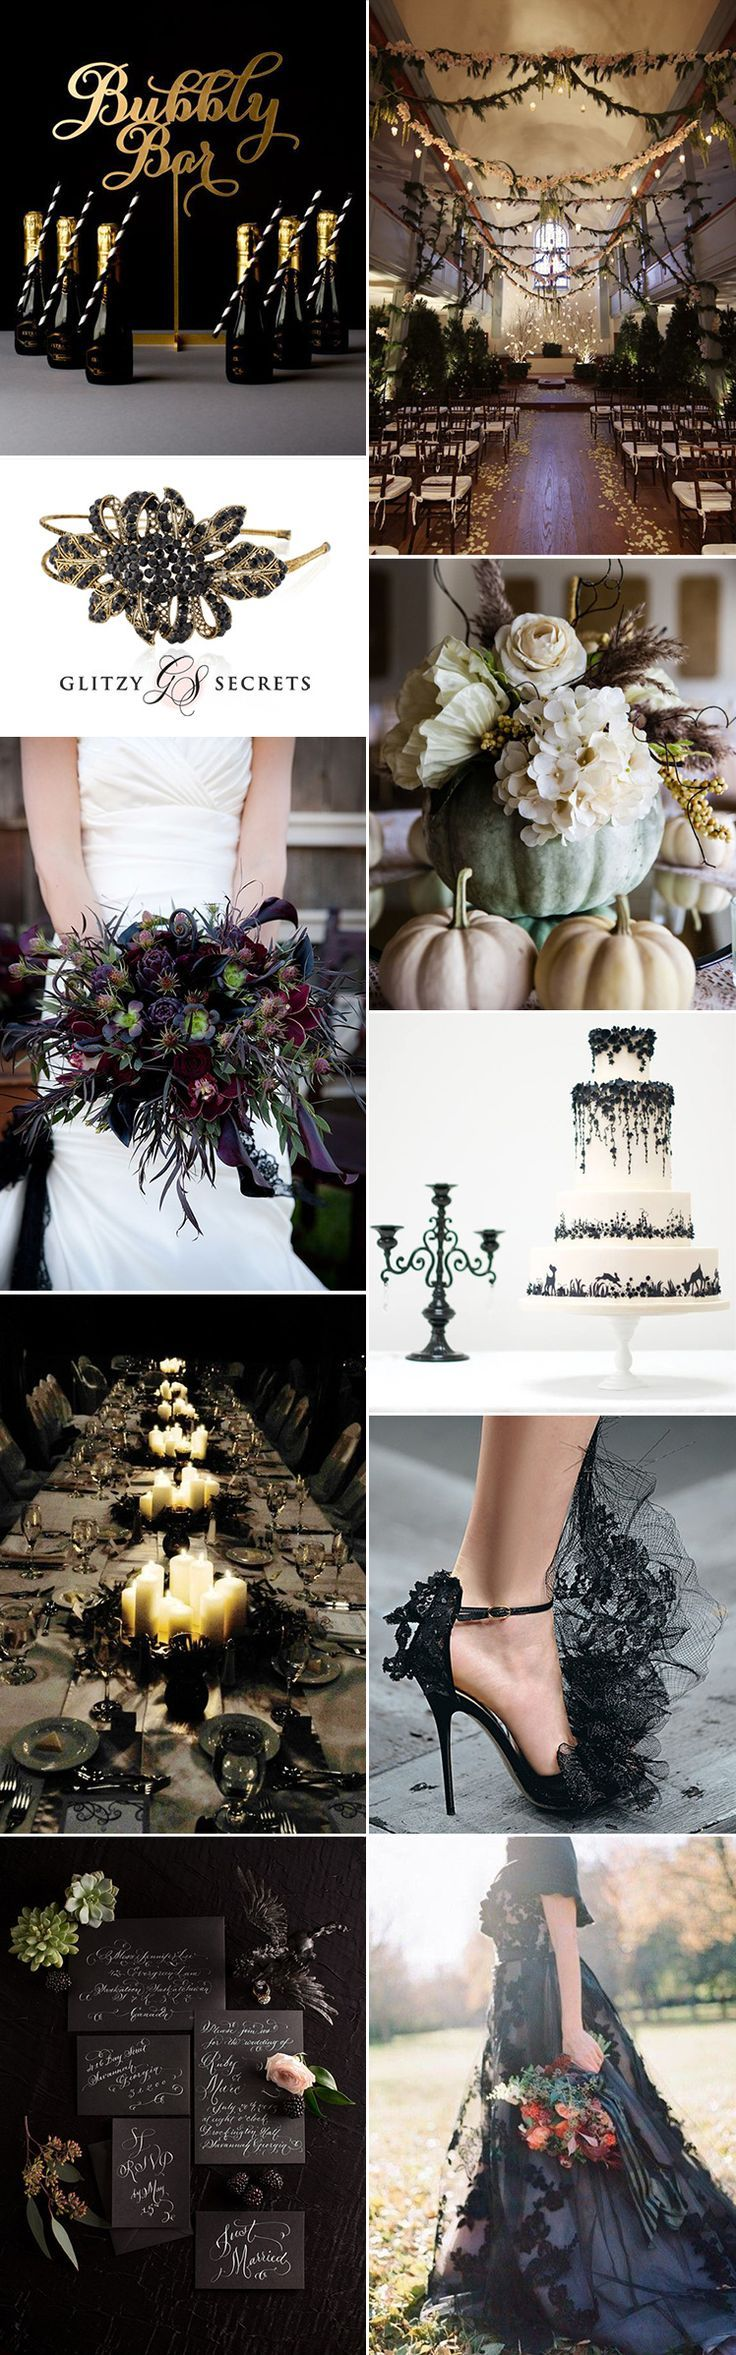 Wedding decorations themes ideas october 2018 Pin by Brittany Davis on Twin Flame  Pinterest  Halloween weddings